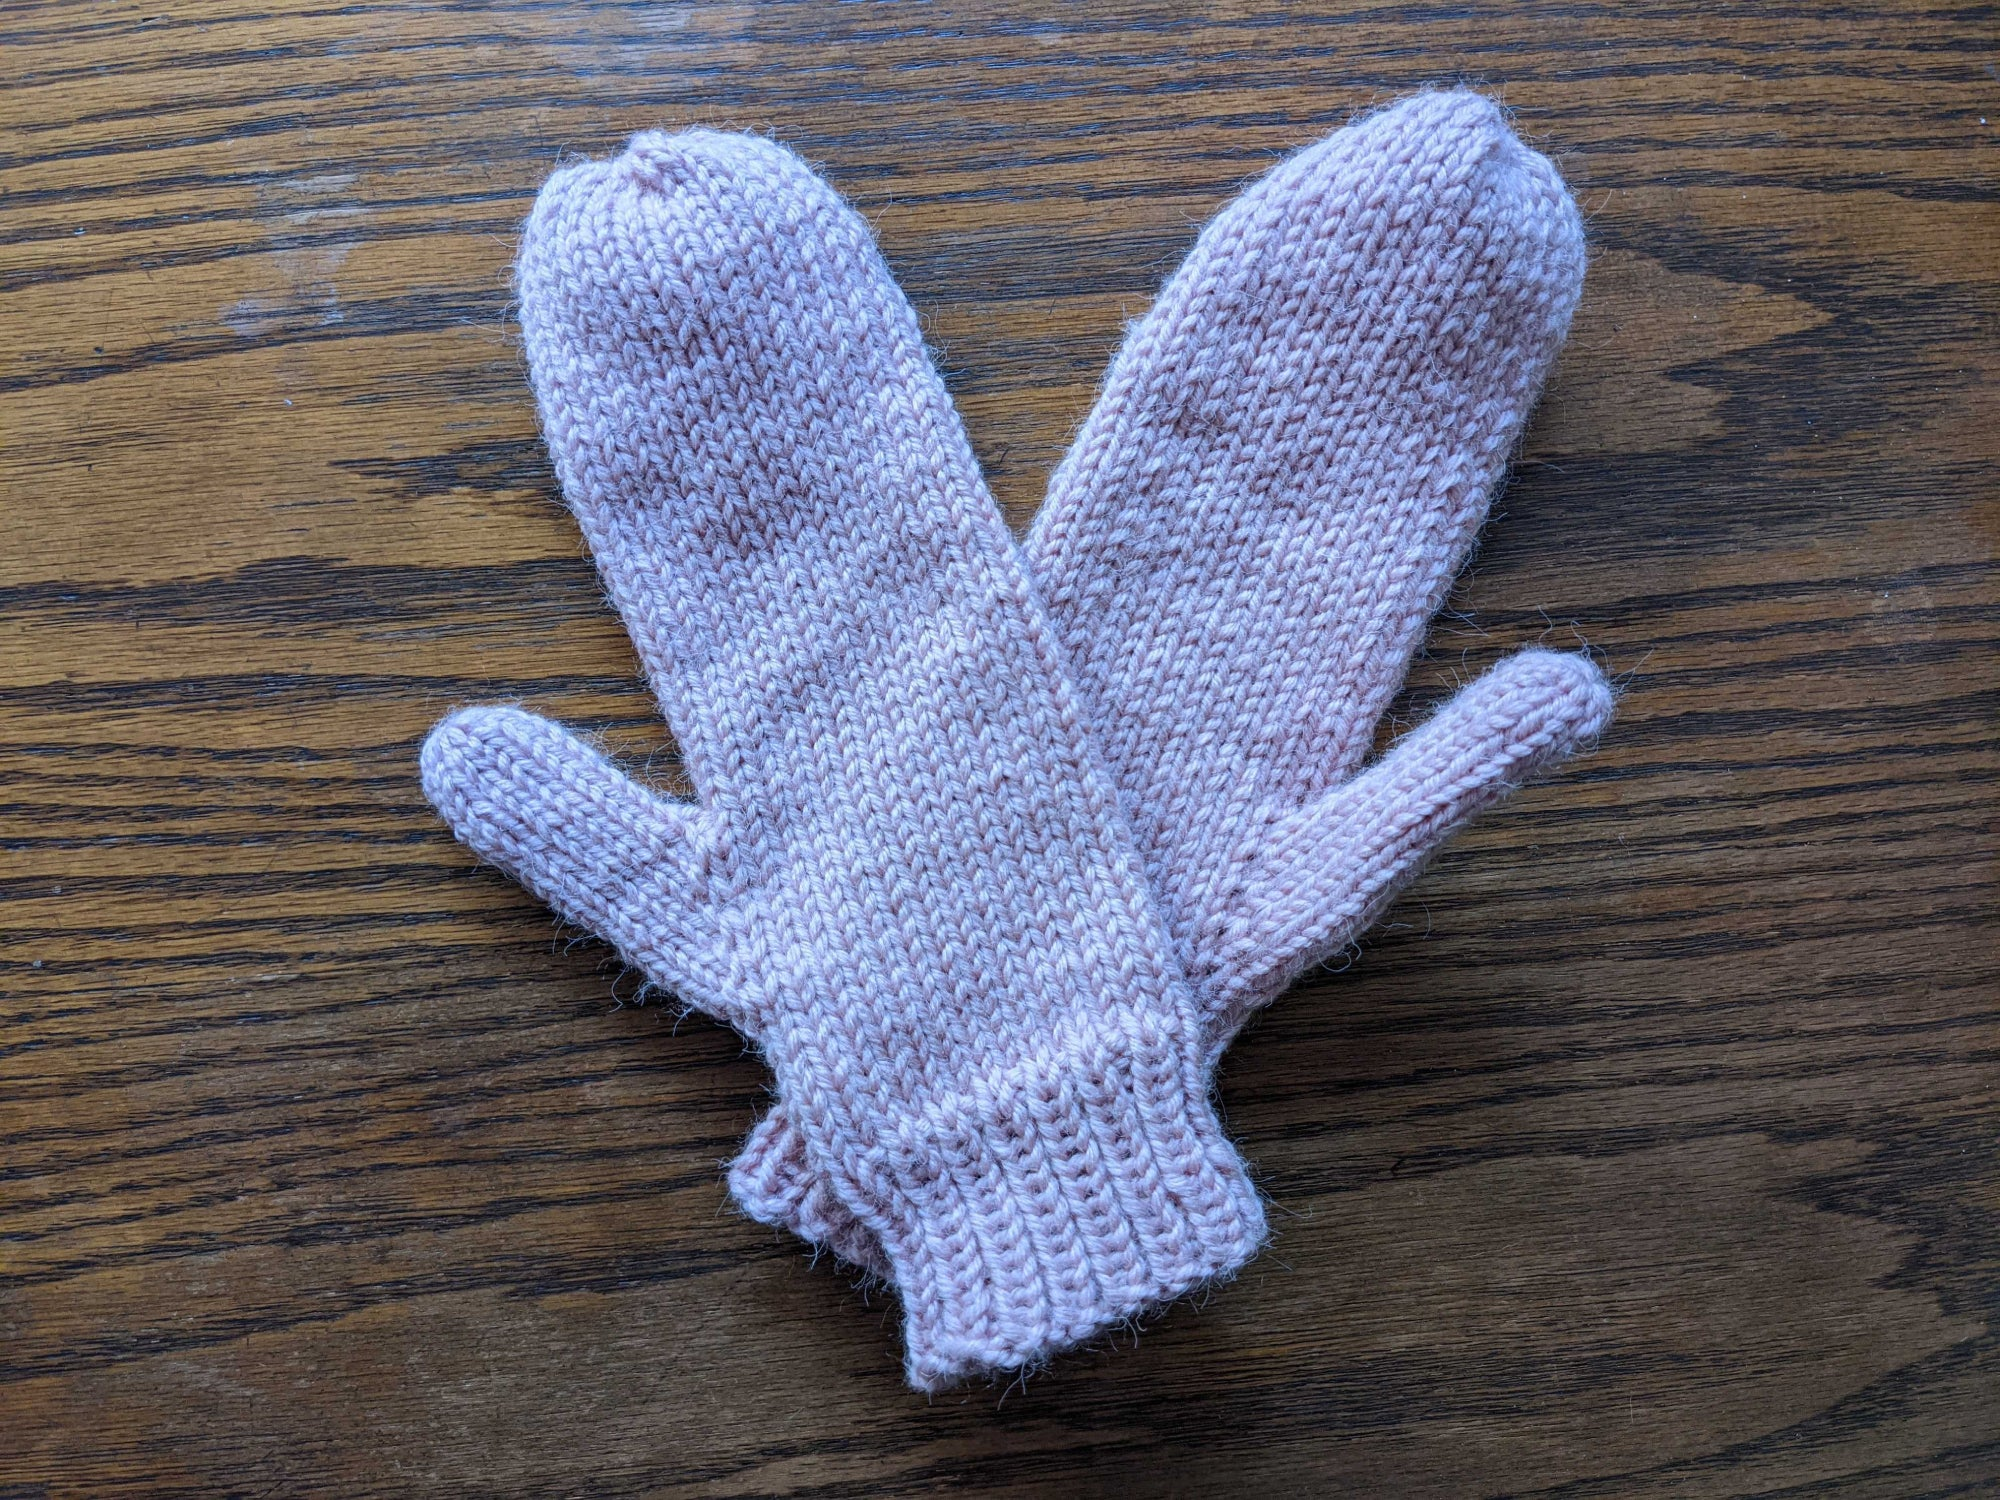 A pair of pink mittens on a wood surface.